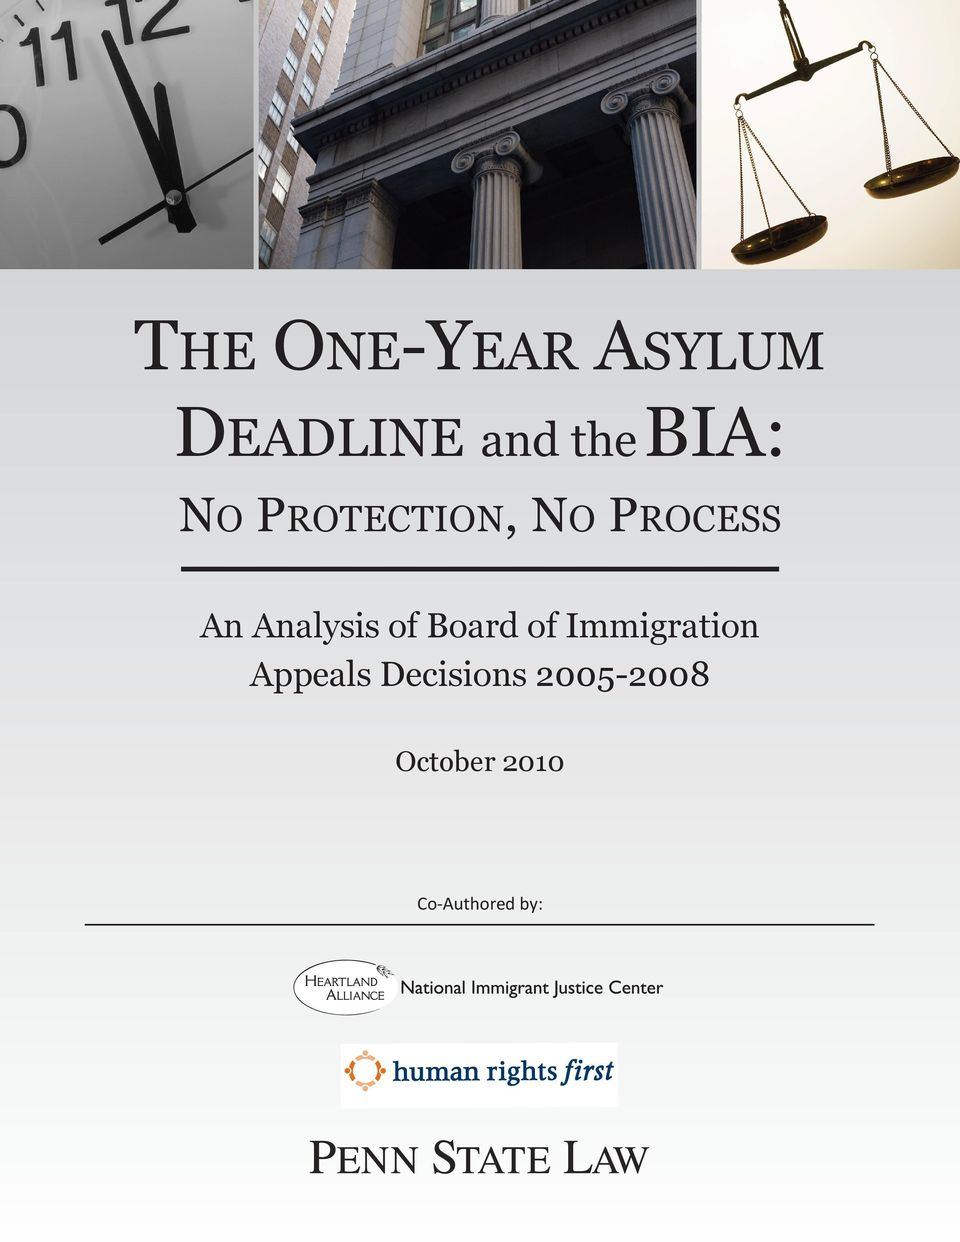 Analysis of Board of Immigration